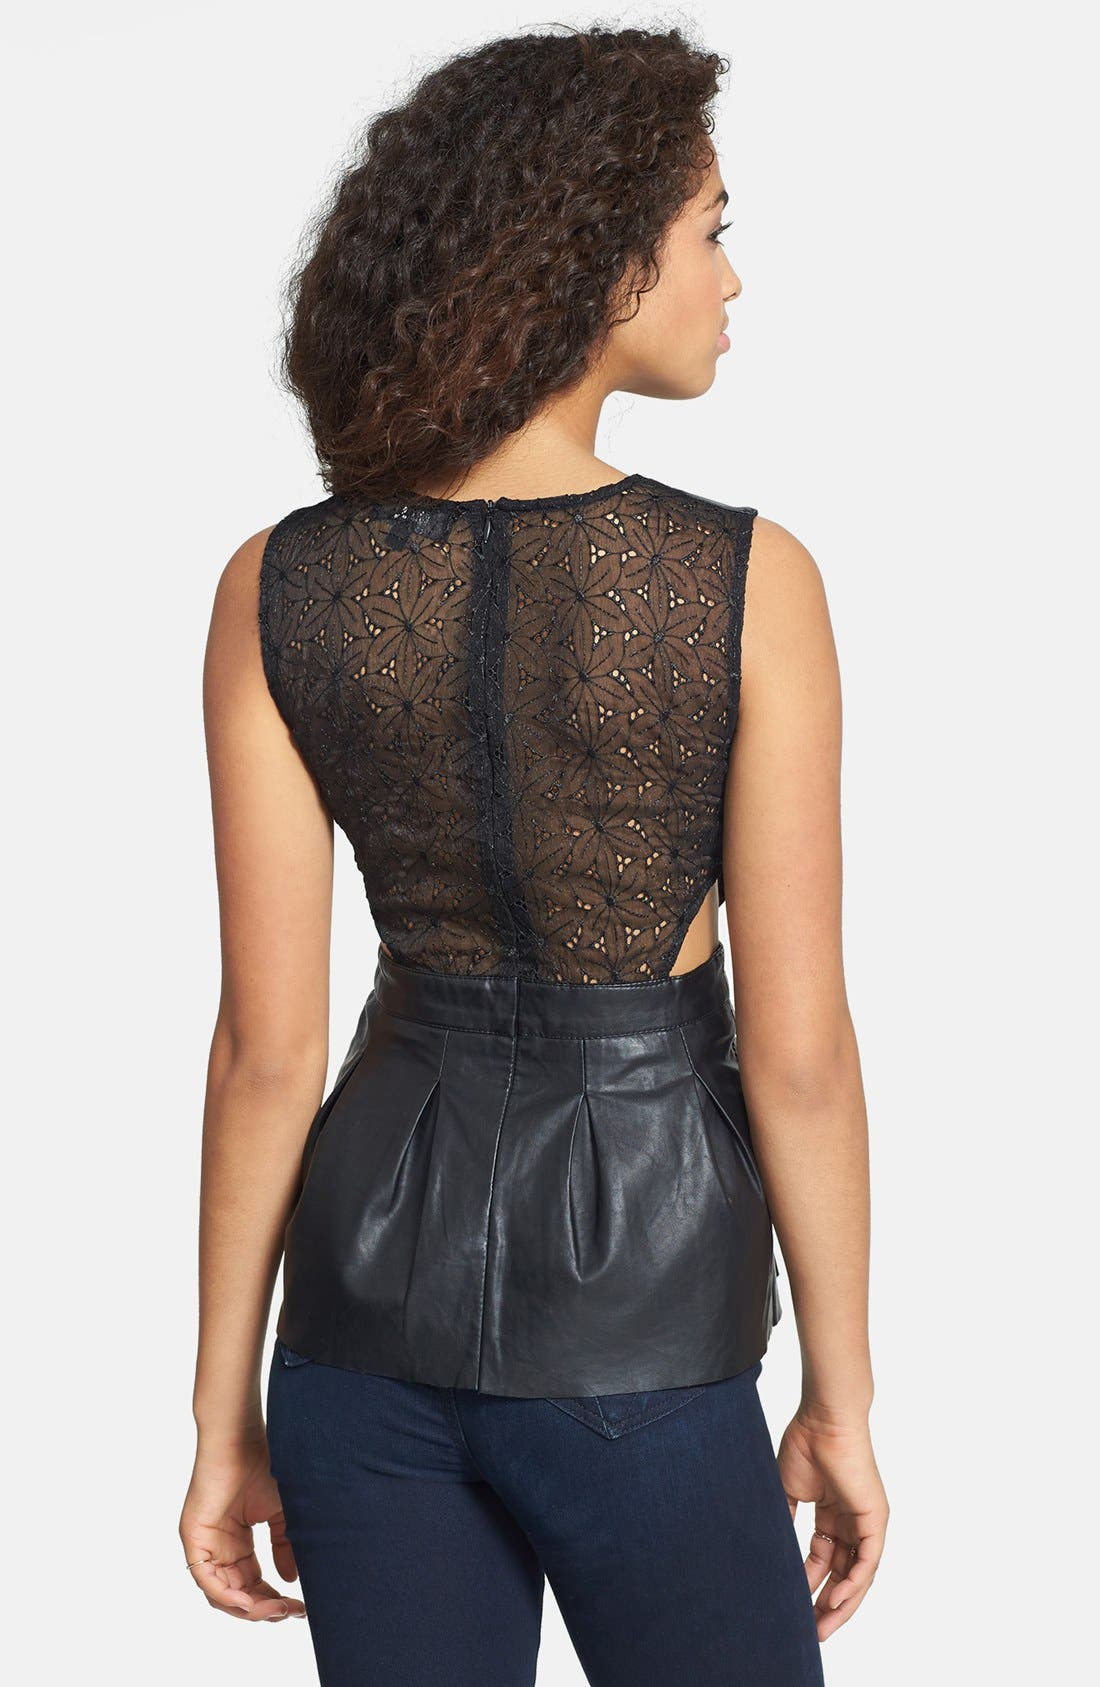 C. LUCE, Embroidered Back Faux Leather Peplum Top, Alternate thumbnail 2, color, 001